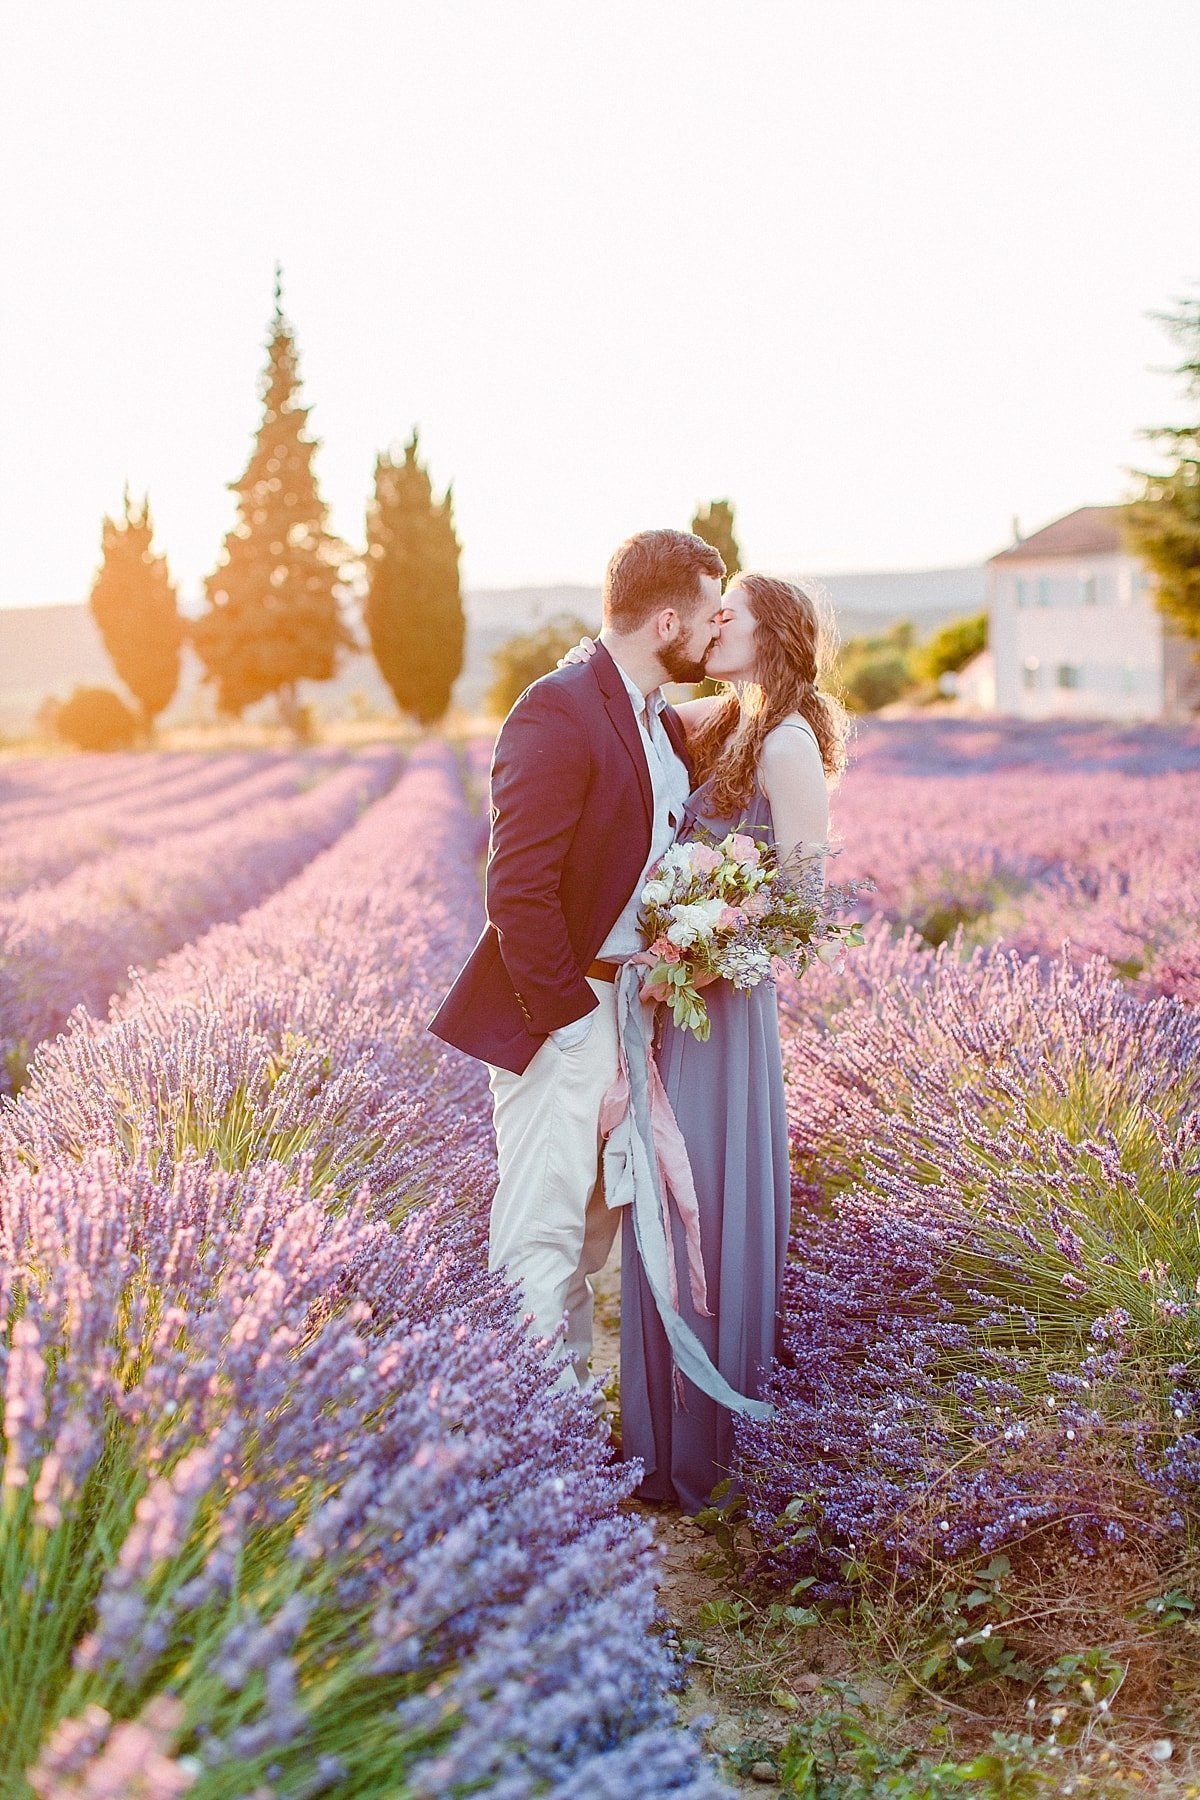 provence-france-lavender-anniversary-session-alicia-yarrish-photography-16